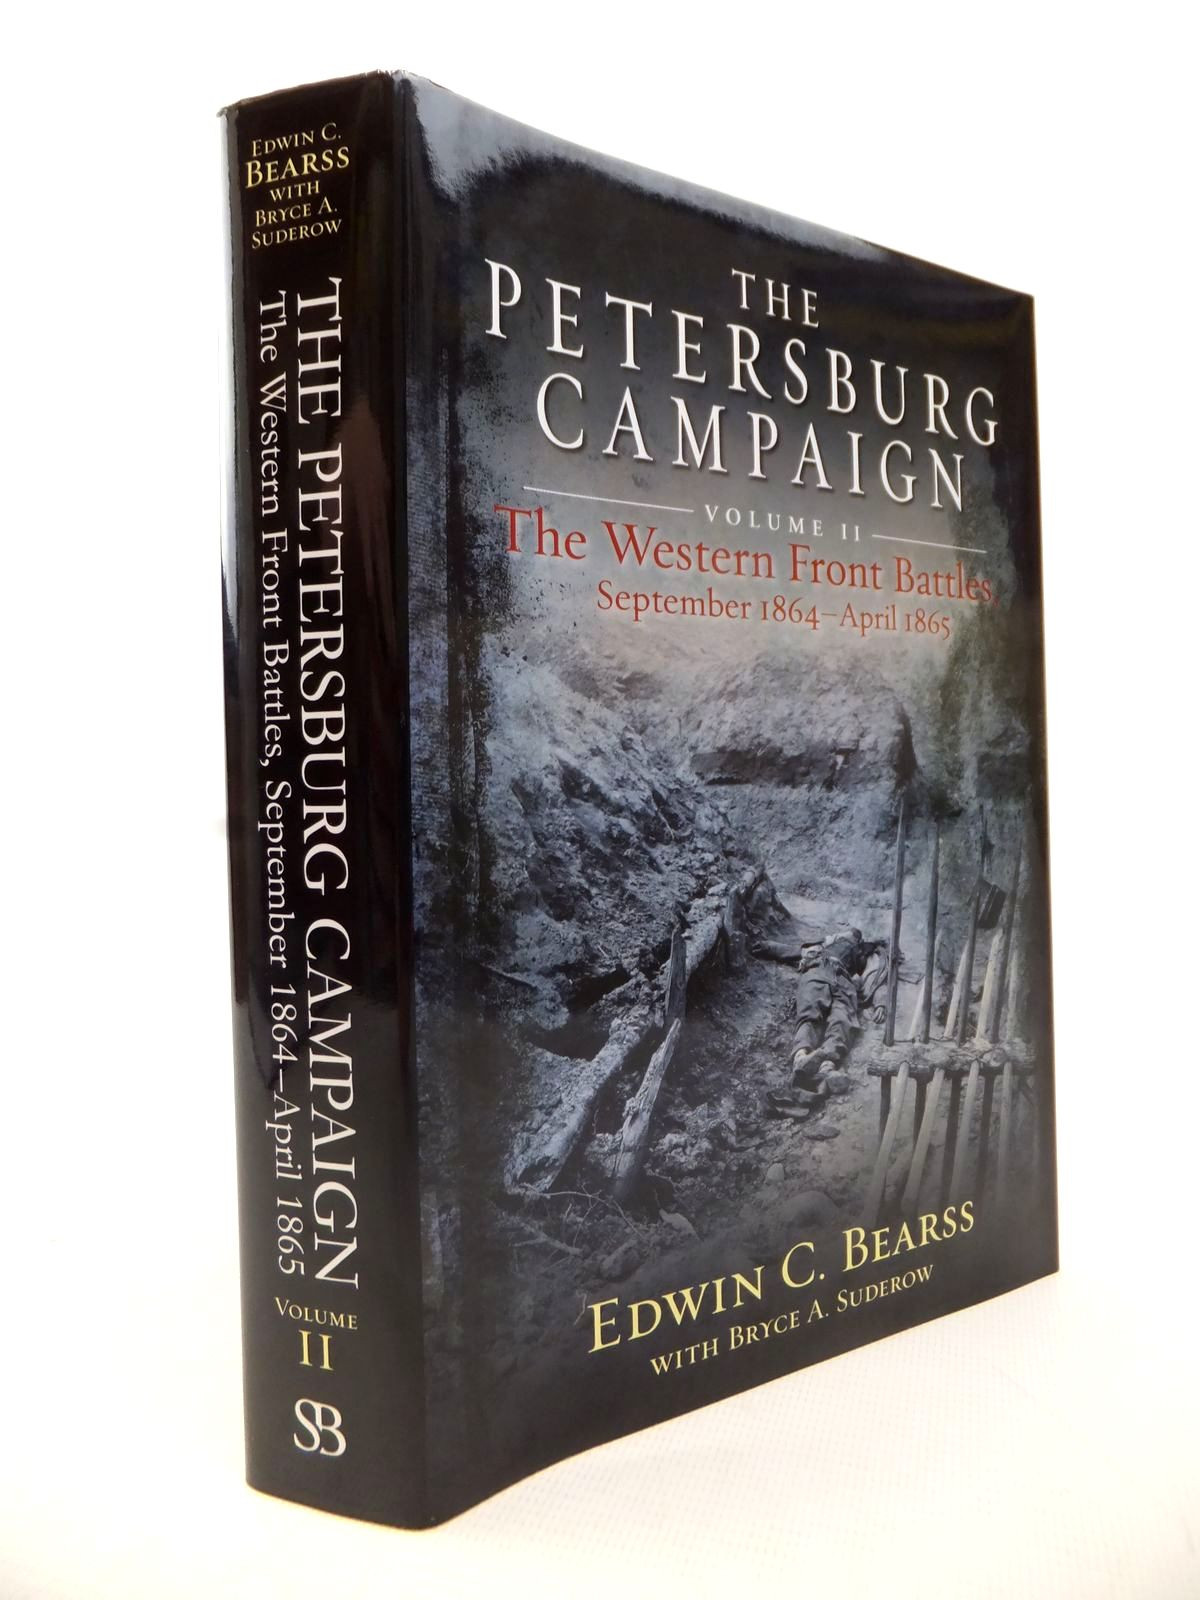 Photo of THE PETERSBURG CAMPAIGN VOL II: THE WESTERN FRONT BATTLES SEPTEMBER 1864-APRIL 1865 written by Bearss, Edwin C.<br />Suderow, Bryce published by Savas Beatie (STOCK CODE: 1813999)  for sale by Stella & Rose's Books